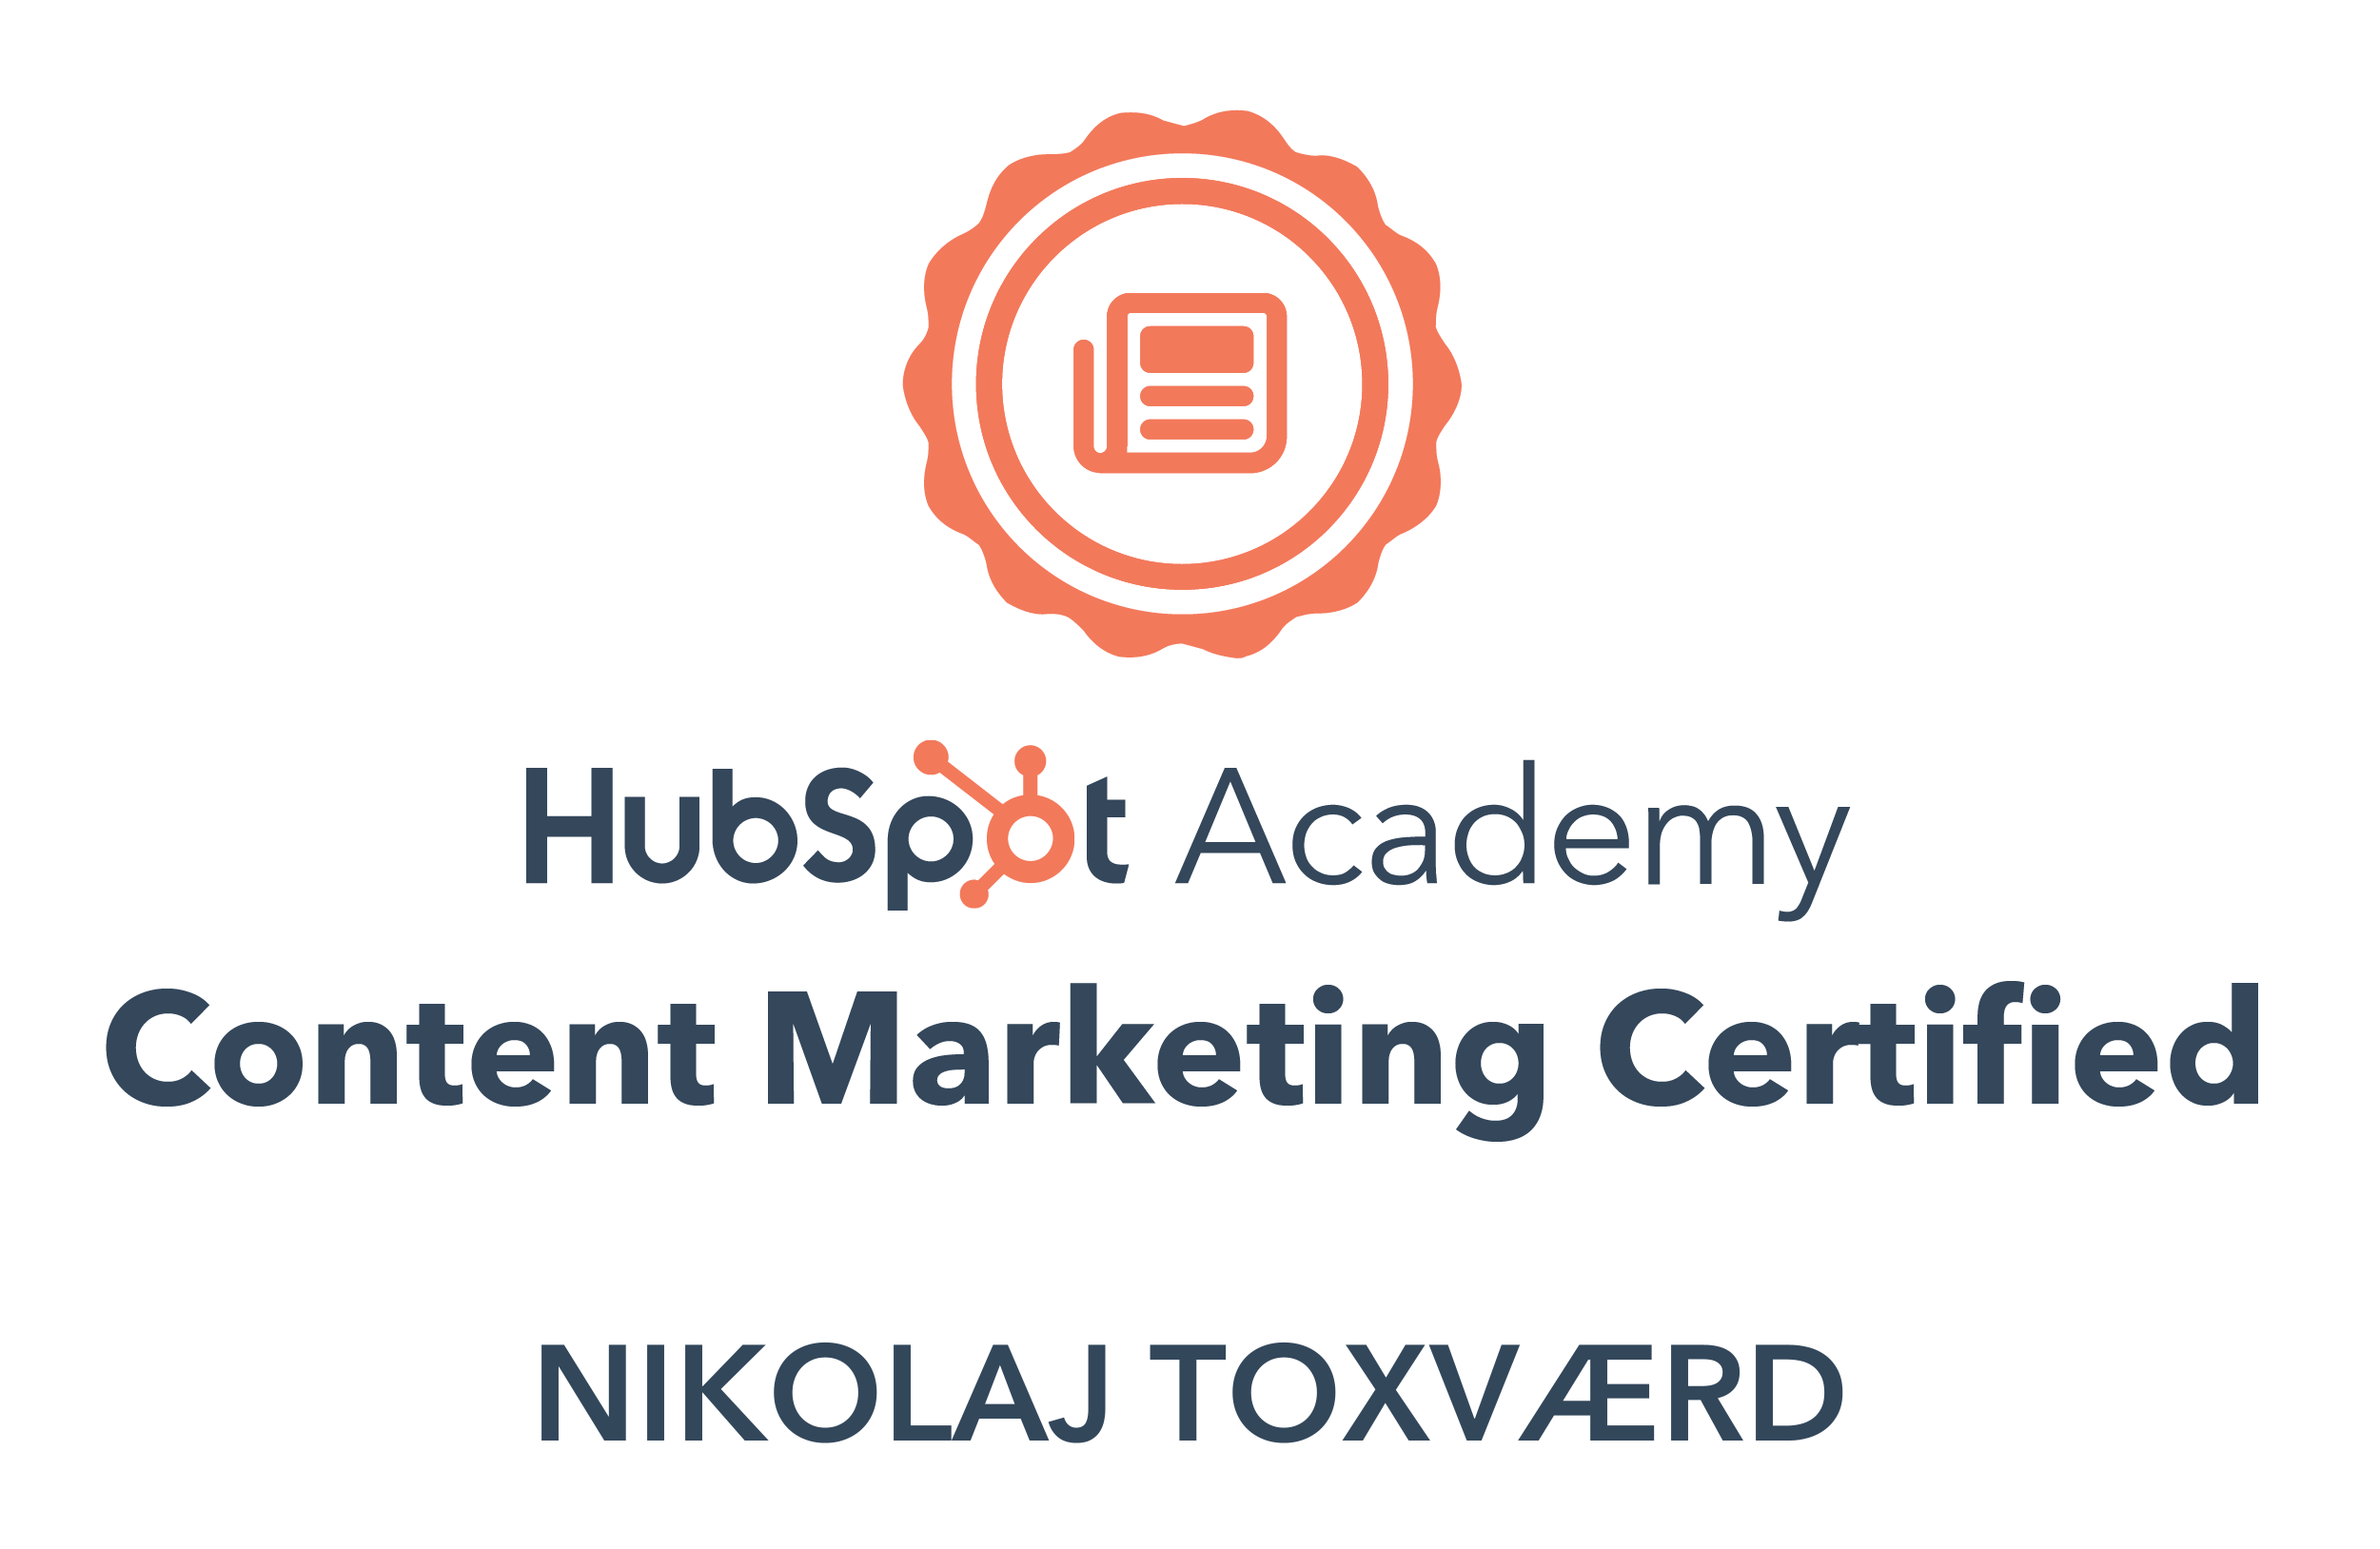 Nikolaj Toxværd er Content Marketing certificeret fra HubSpot